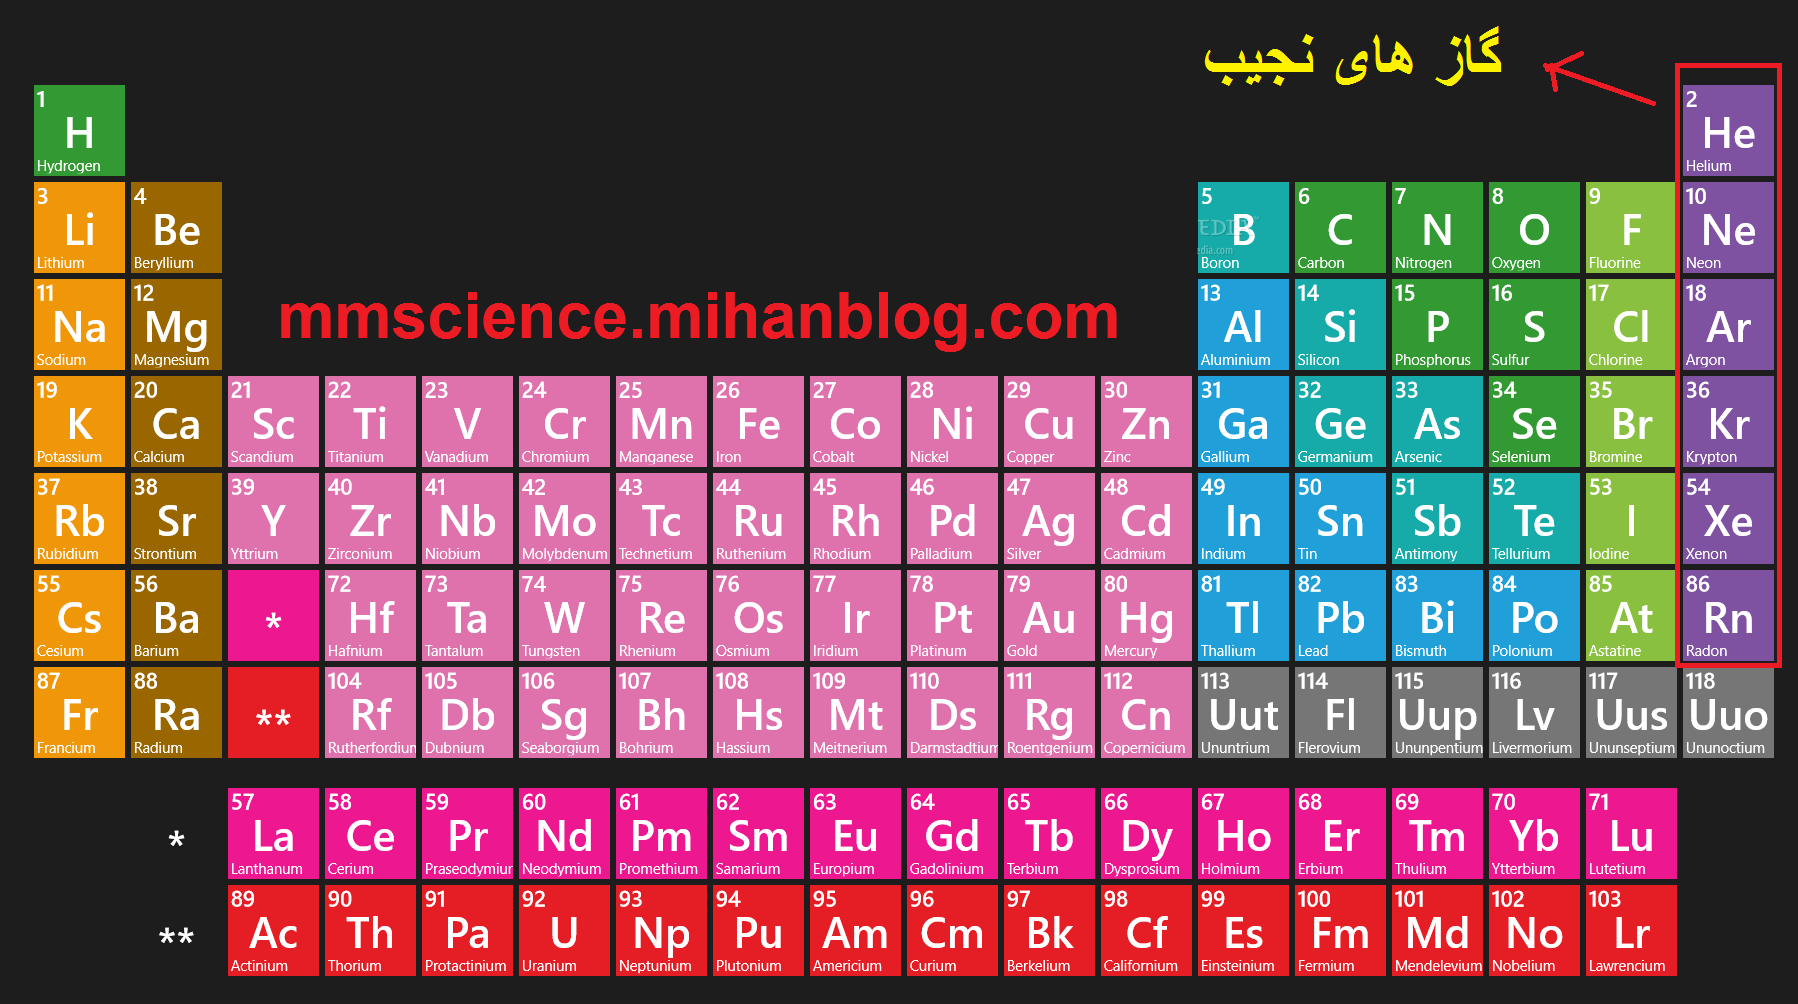 http://s8.picofile.com/file/8274282476/Periodic_Table_by_Revolution_Software_1%D8%B9%D8%BA%D9%84%D9%81%D9%82%D8%A8%DB%8C.png